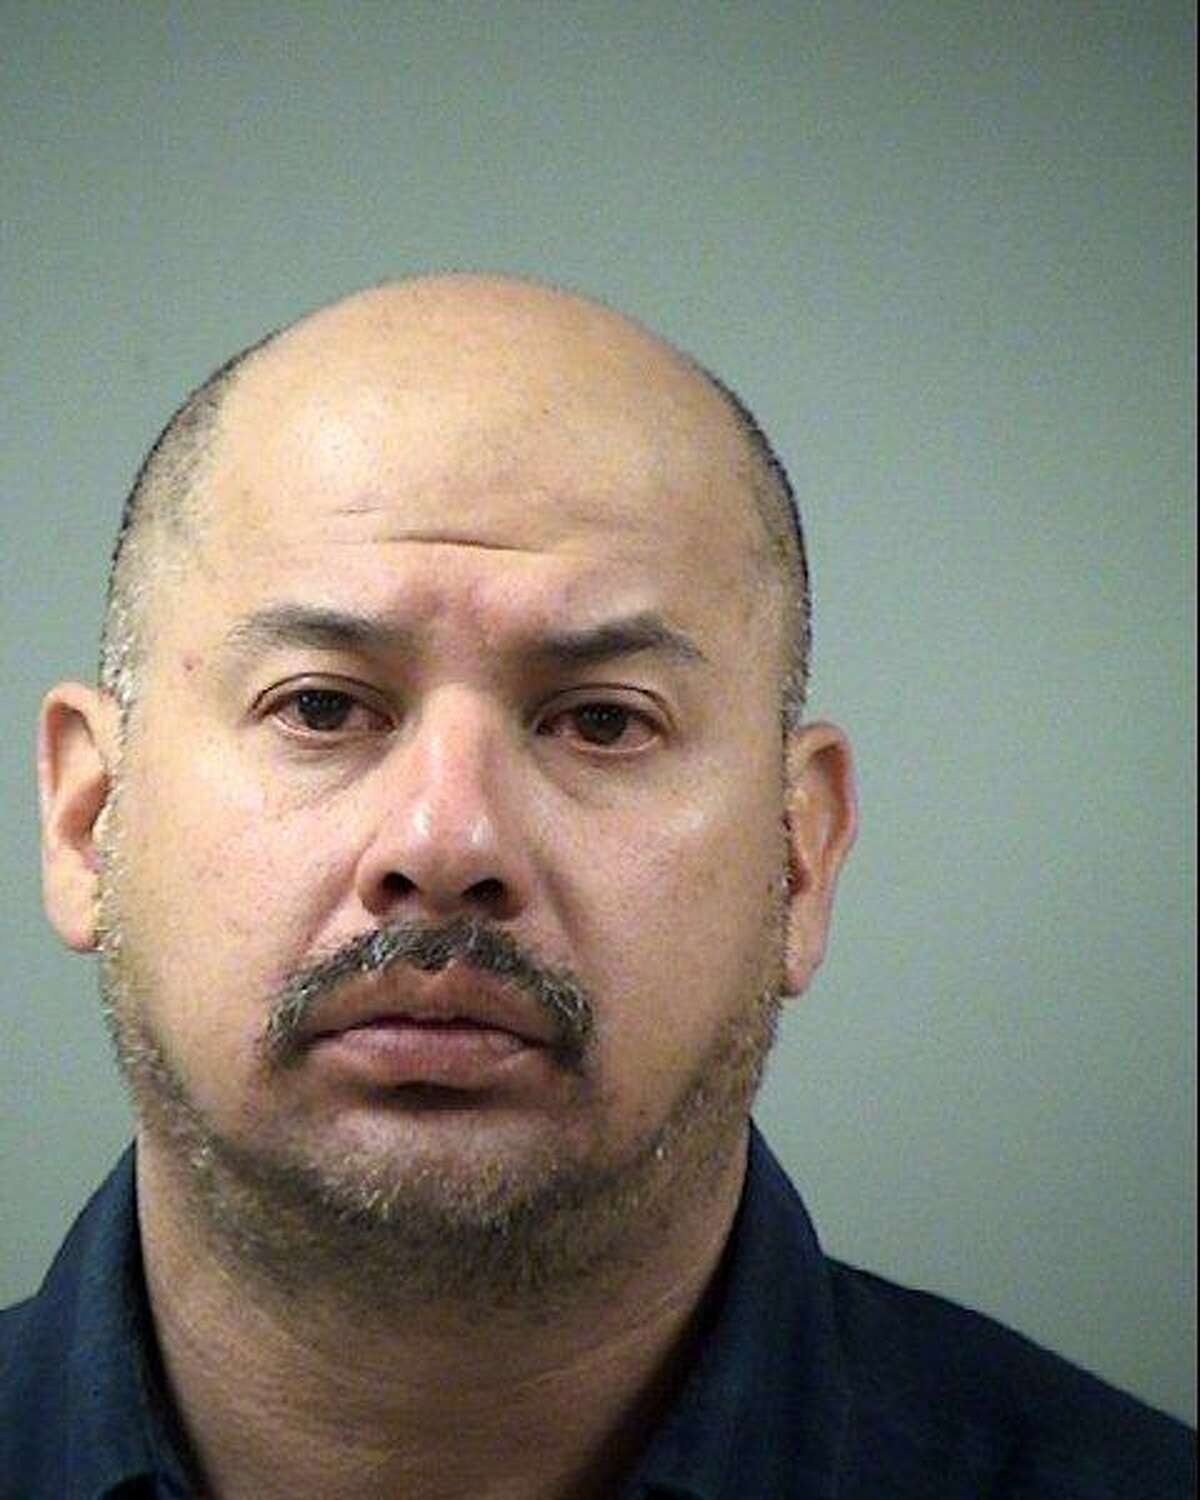 Roland Flores, driving while intoxicated 3rd or more